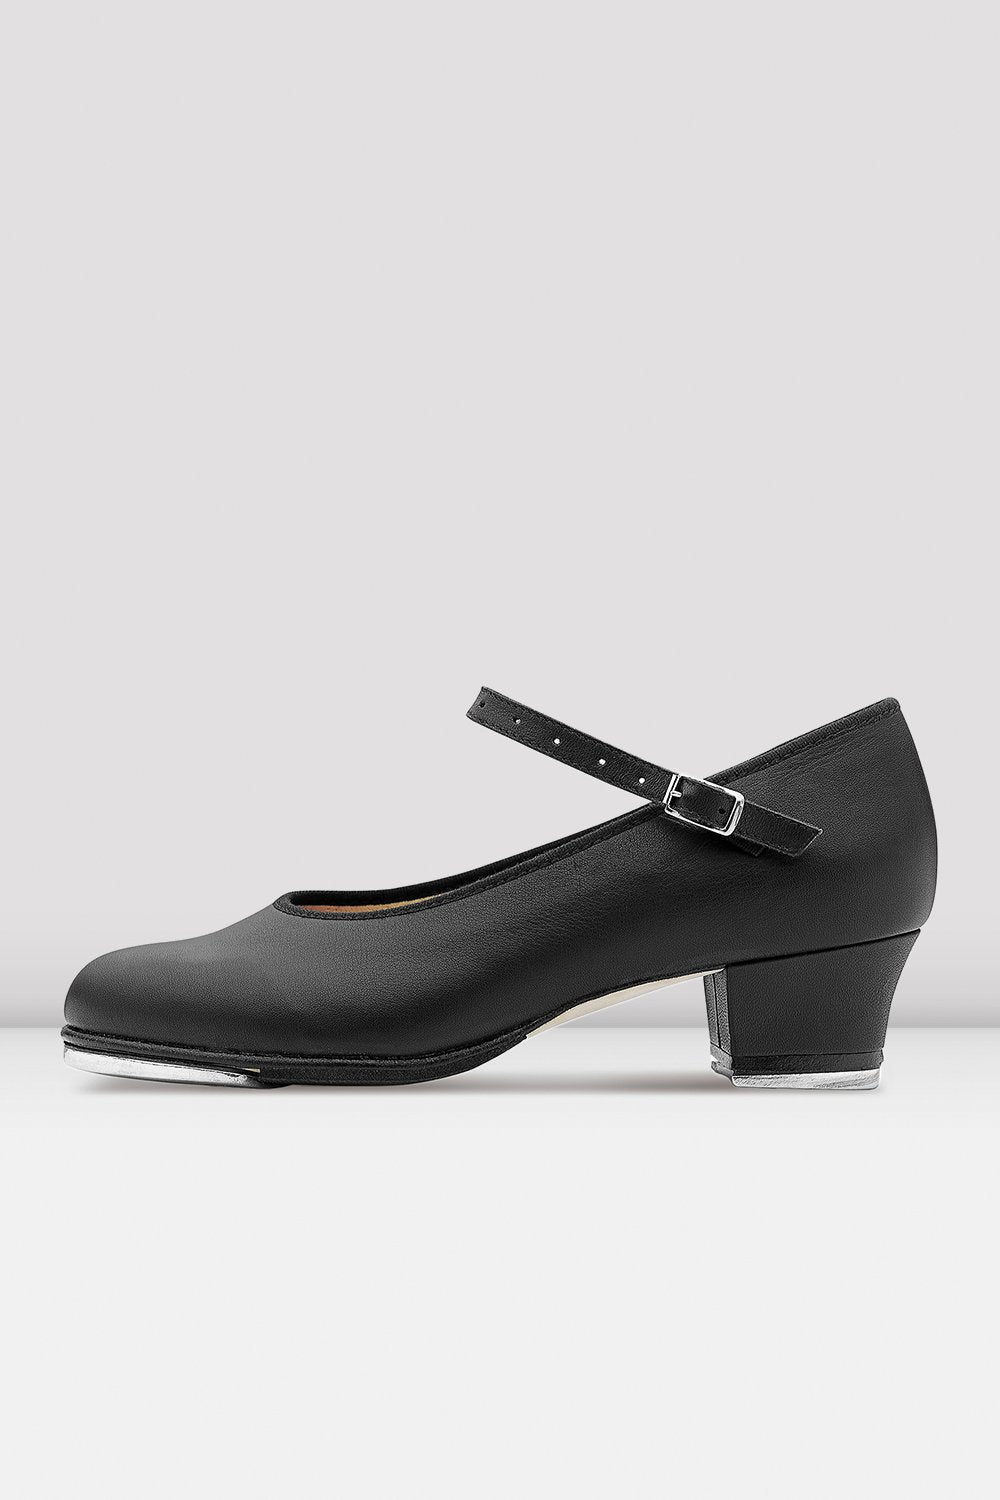 Ladies Showtapper Leather Tap Shoes - BLOCH US